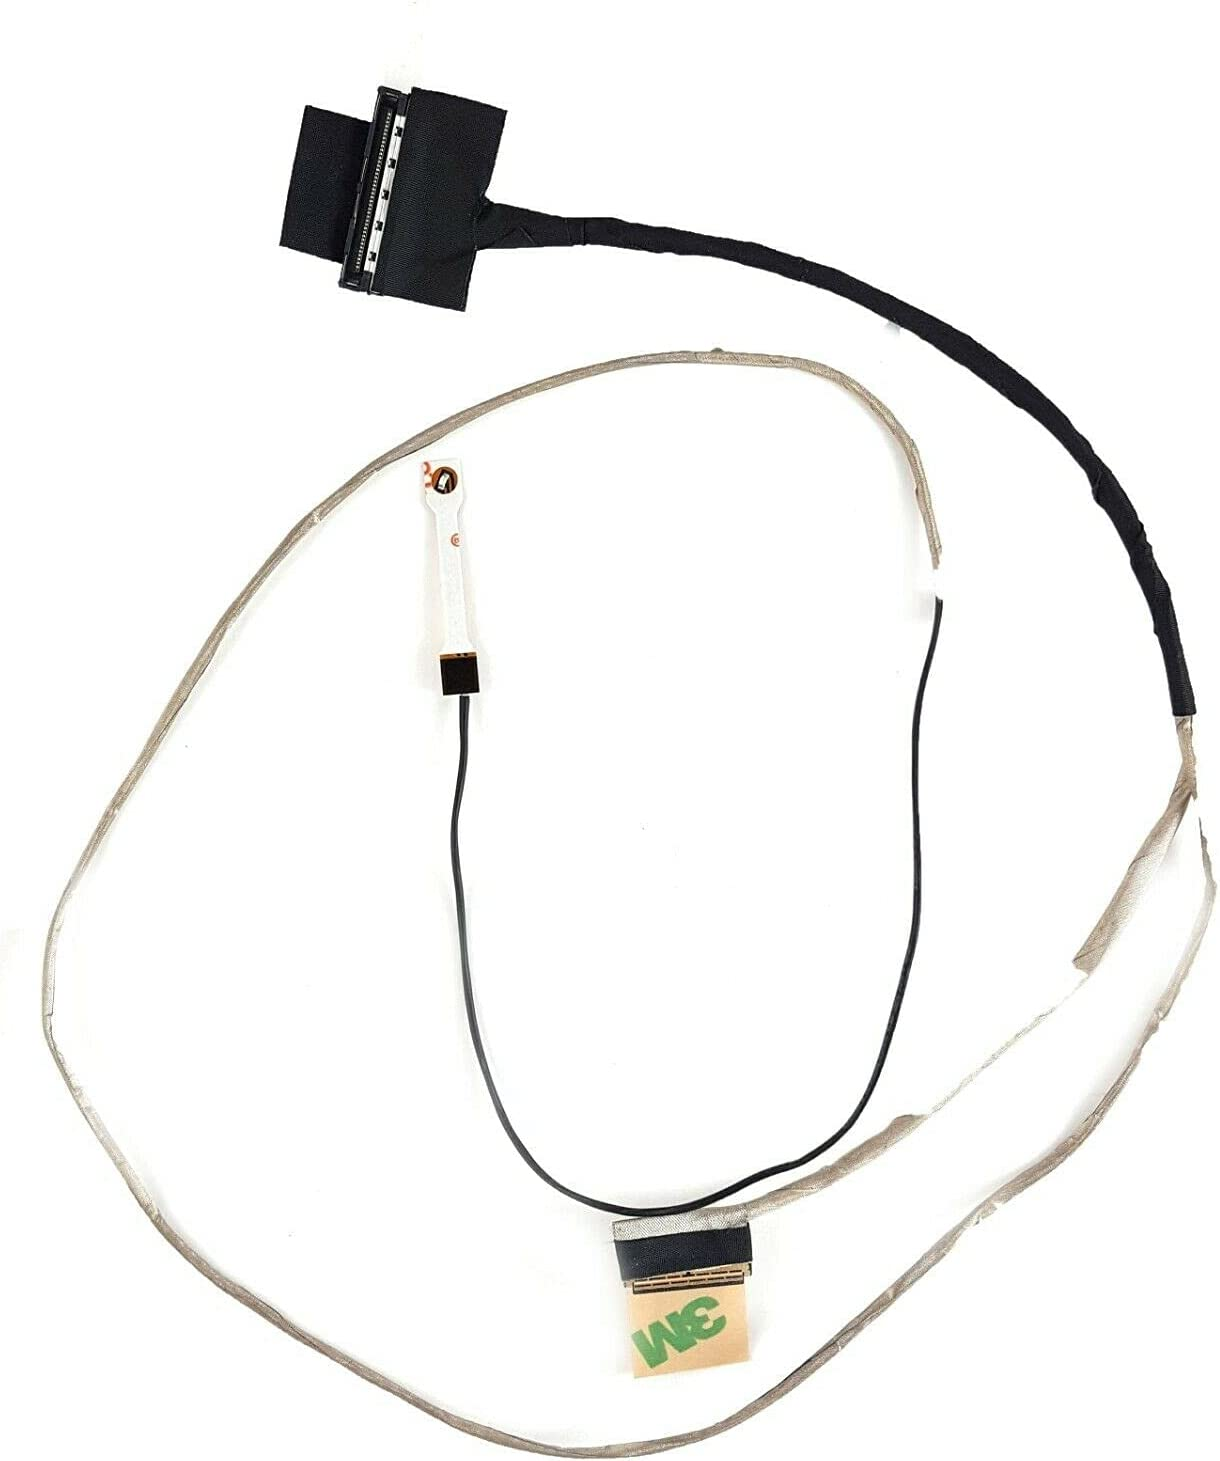 WEIMEI FENG LCD Video Cable Raleigh Mall Indefinitely E570 Thinkpad Lenovo Replacement for